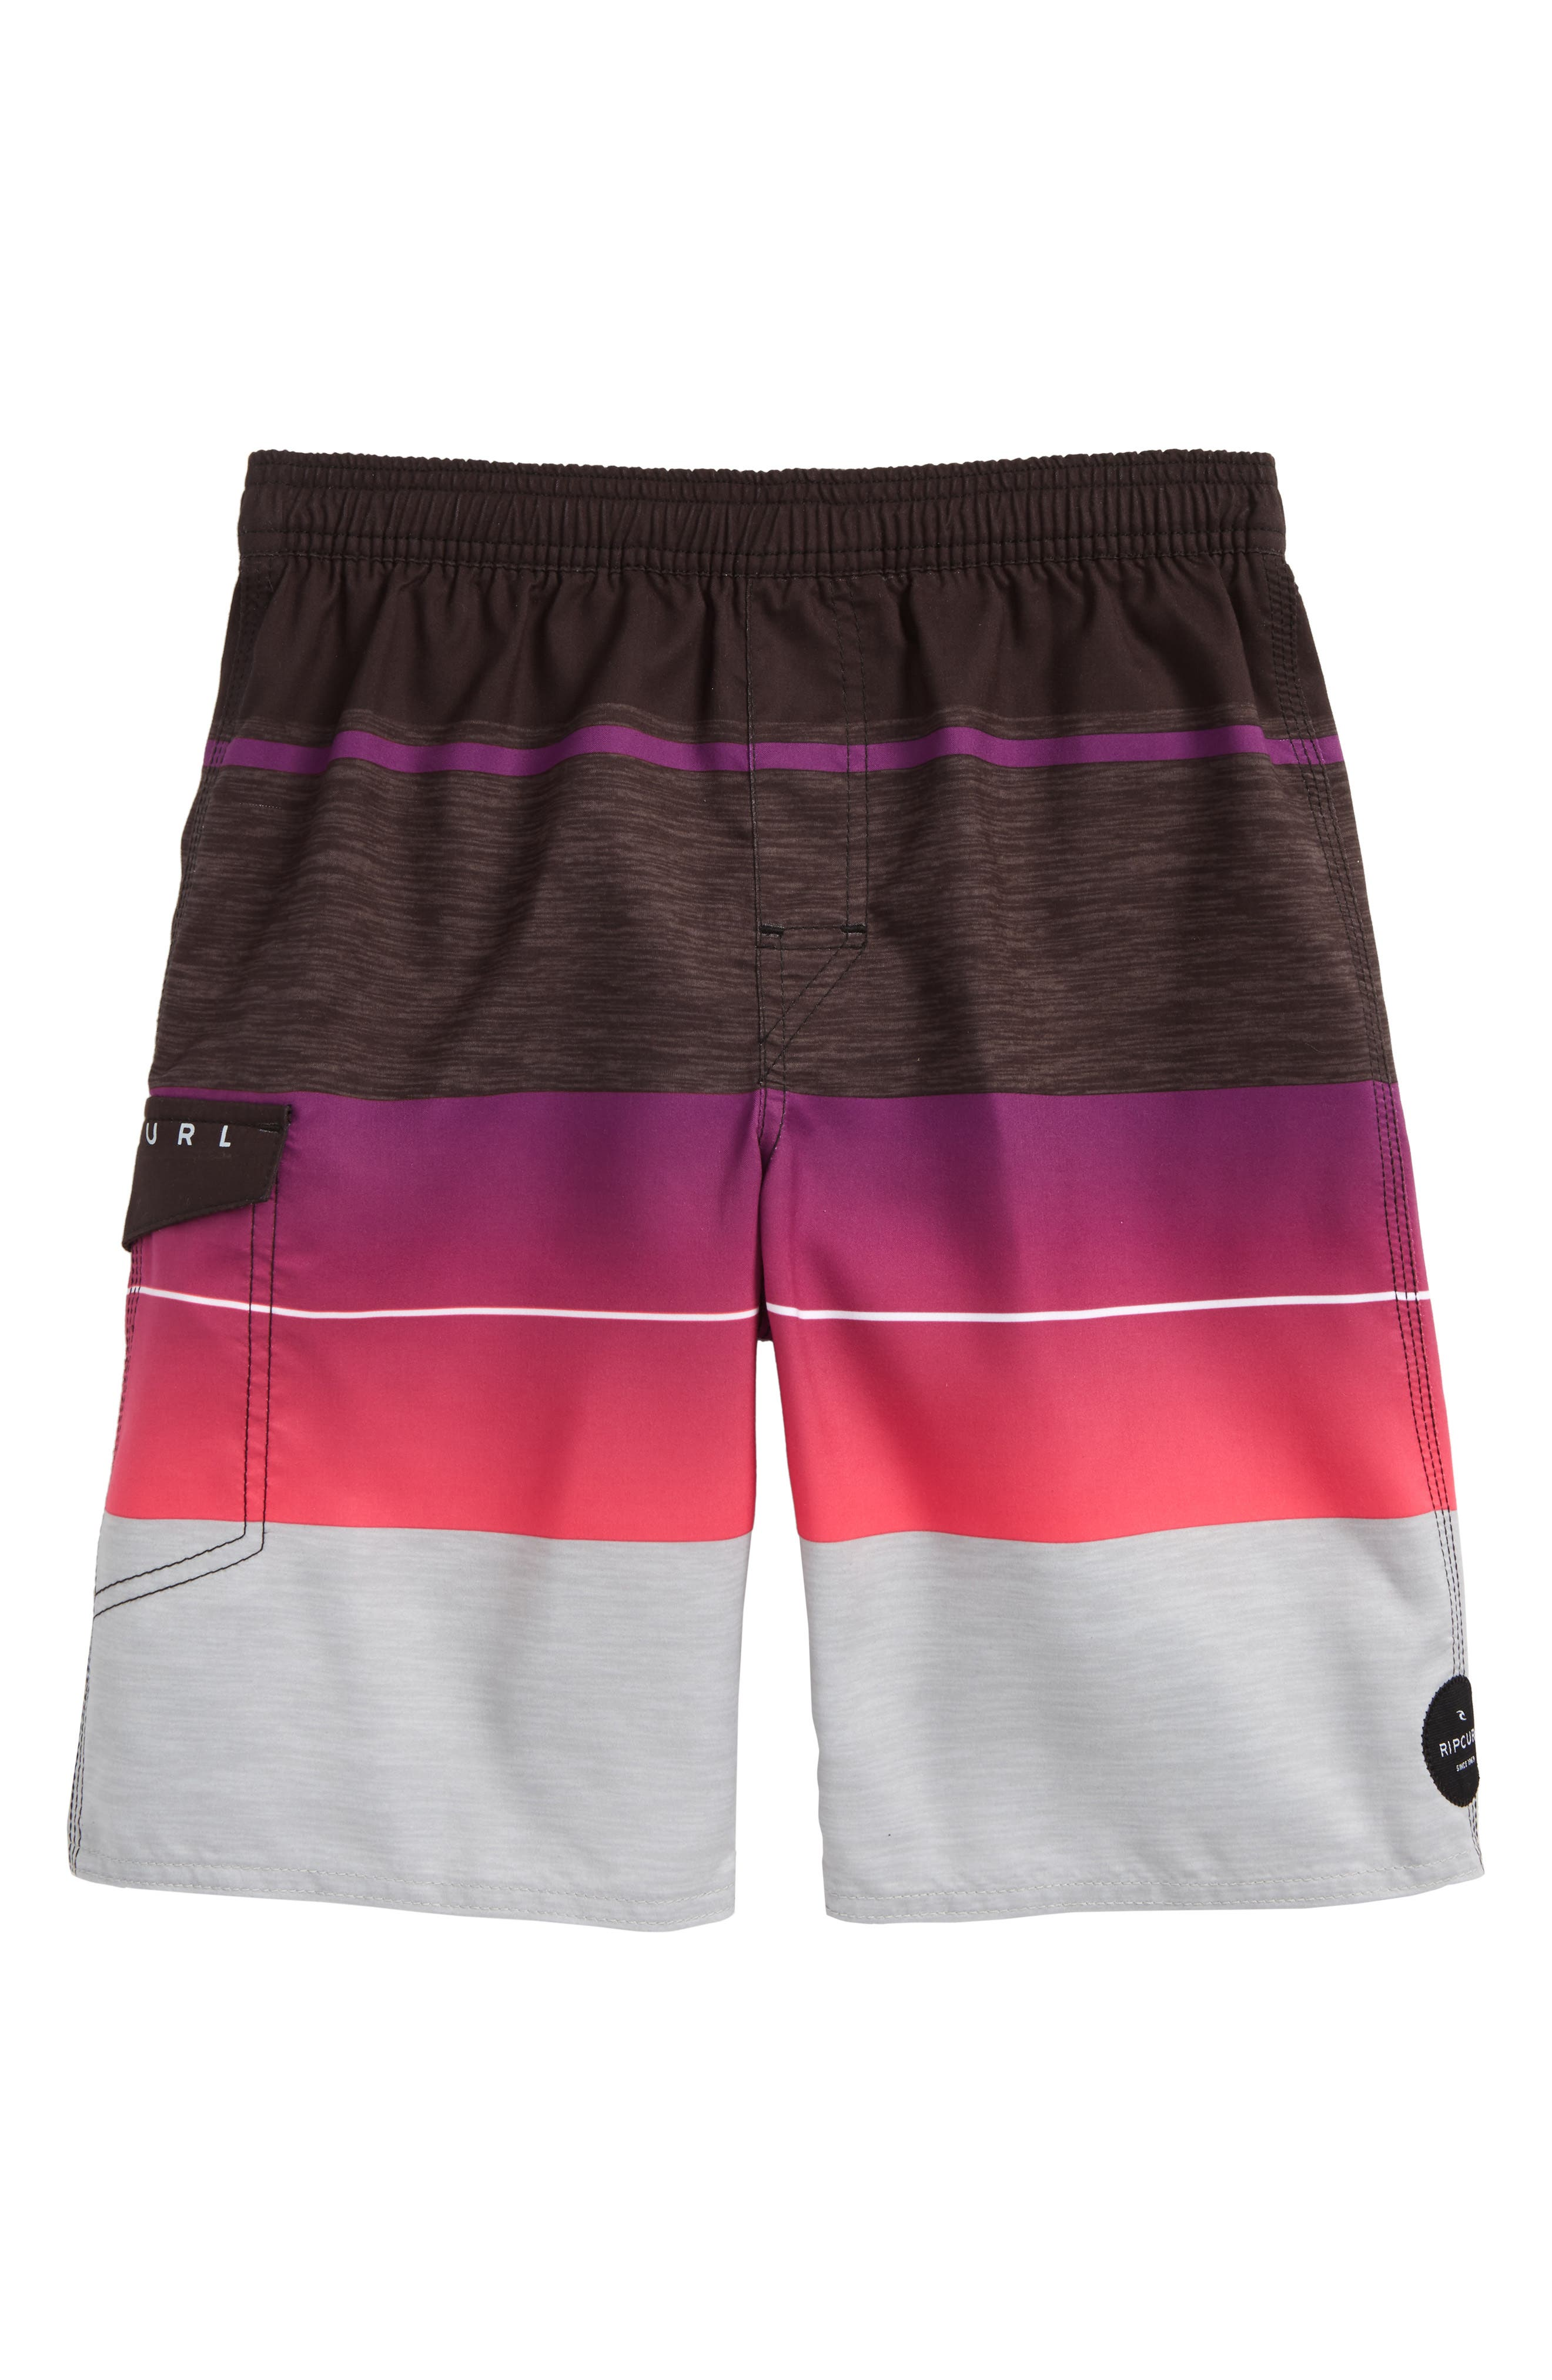 Eclipse Volley Shorts,                             Main thumbnail 1, color,                             Pink